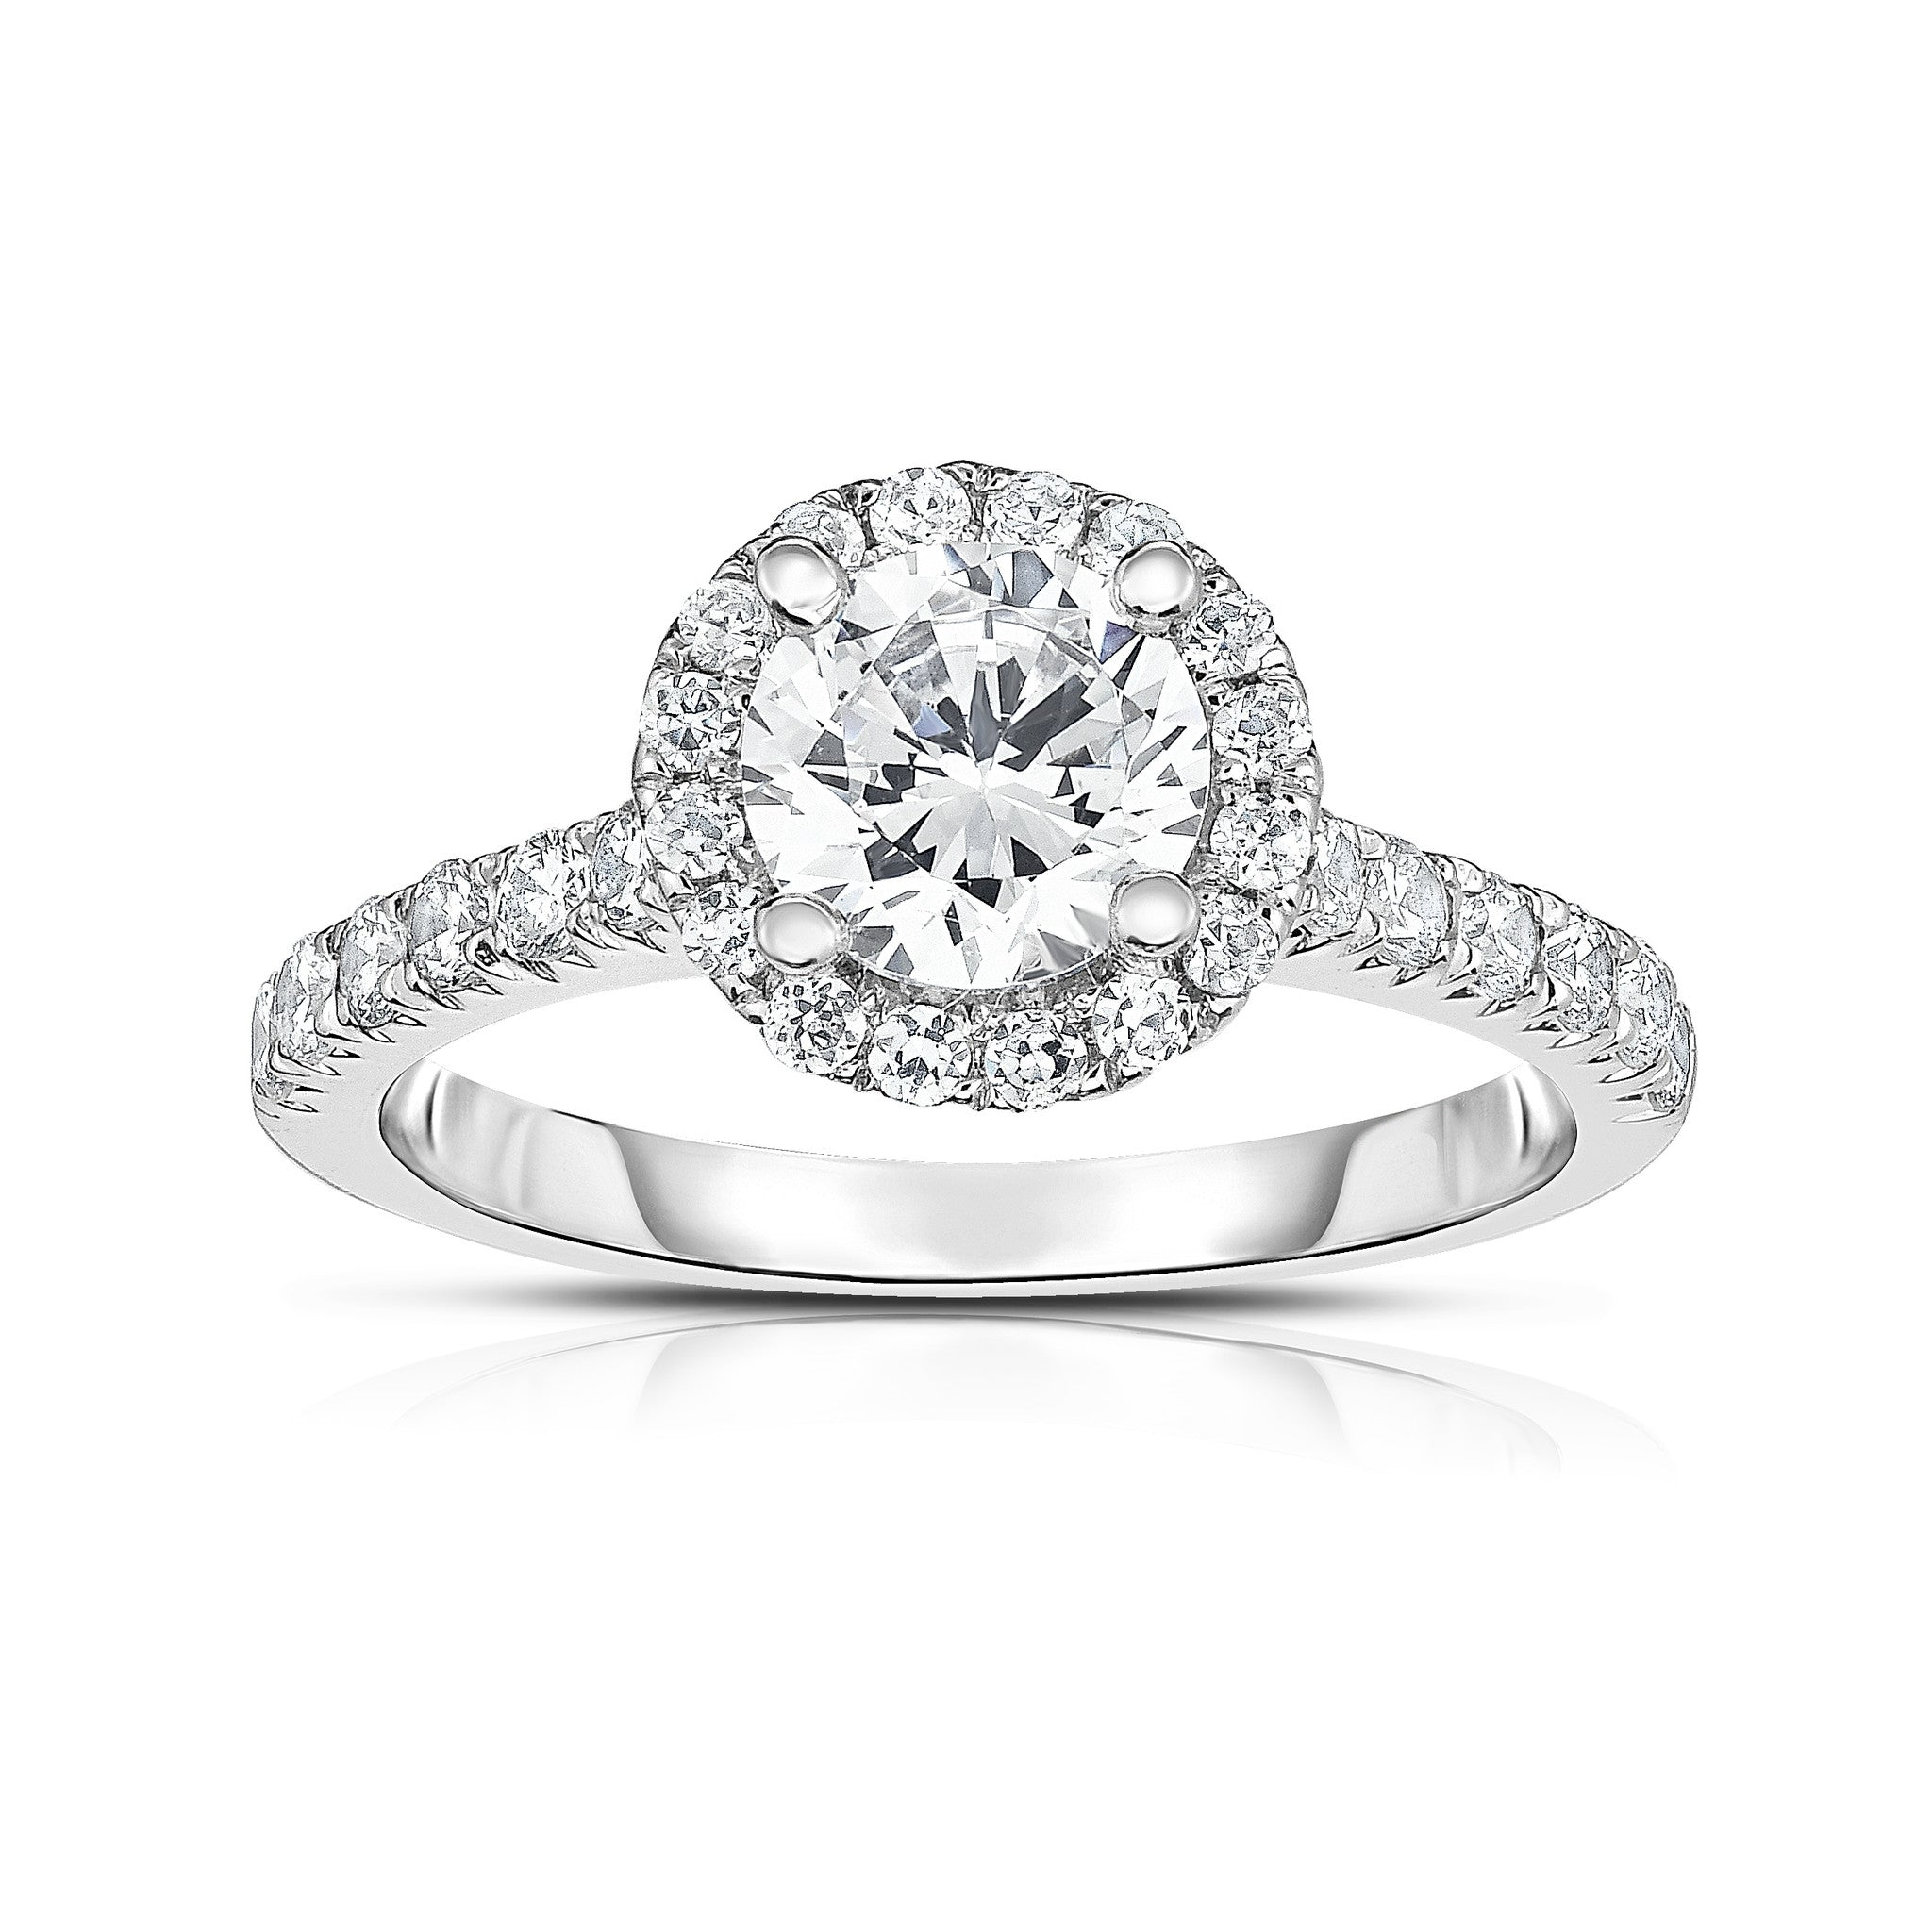 cz beloved ring diamond shonda classic clear promise and cushion rahil wedding stone three trillion tri products sparkles cut rings faux cubic zirconia carat engagement